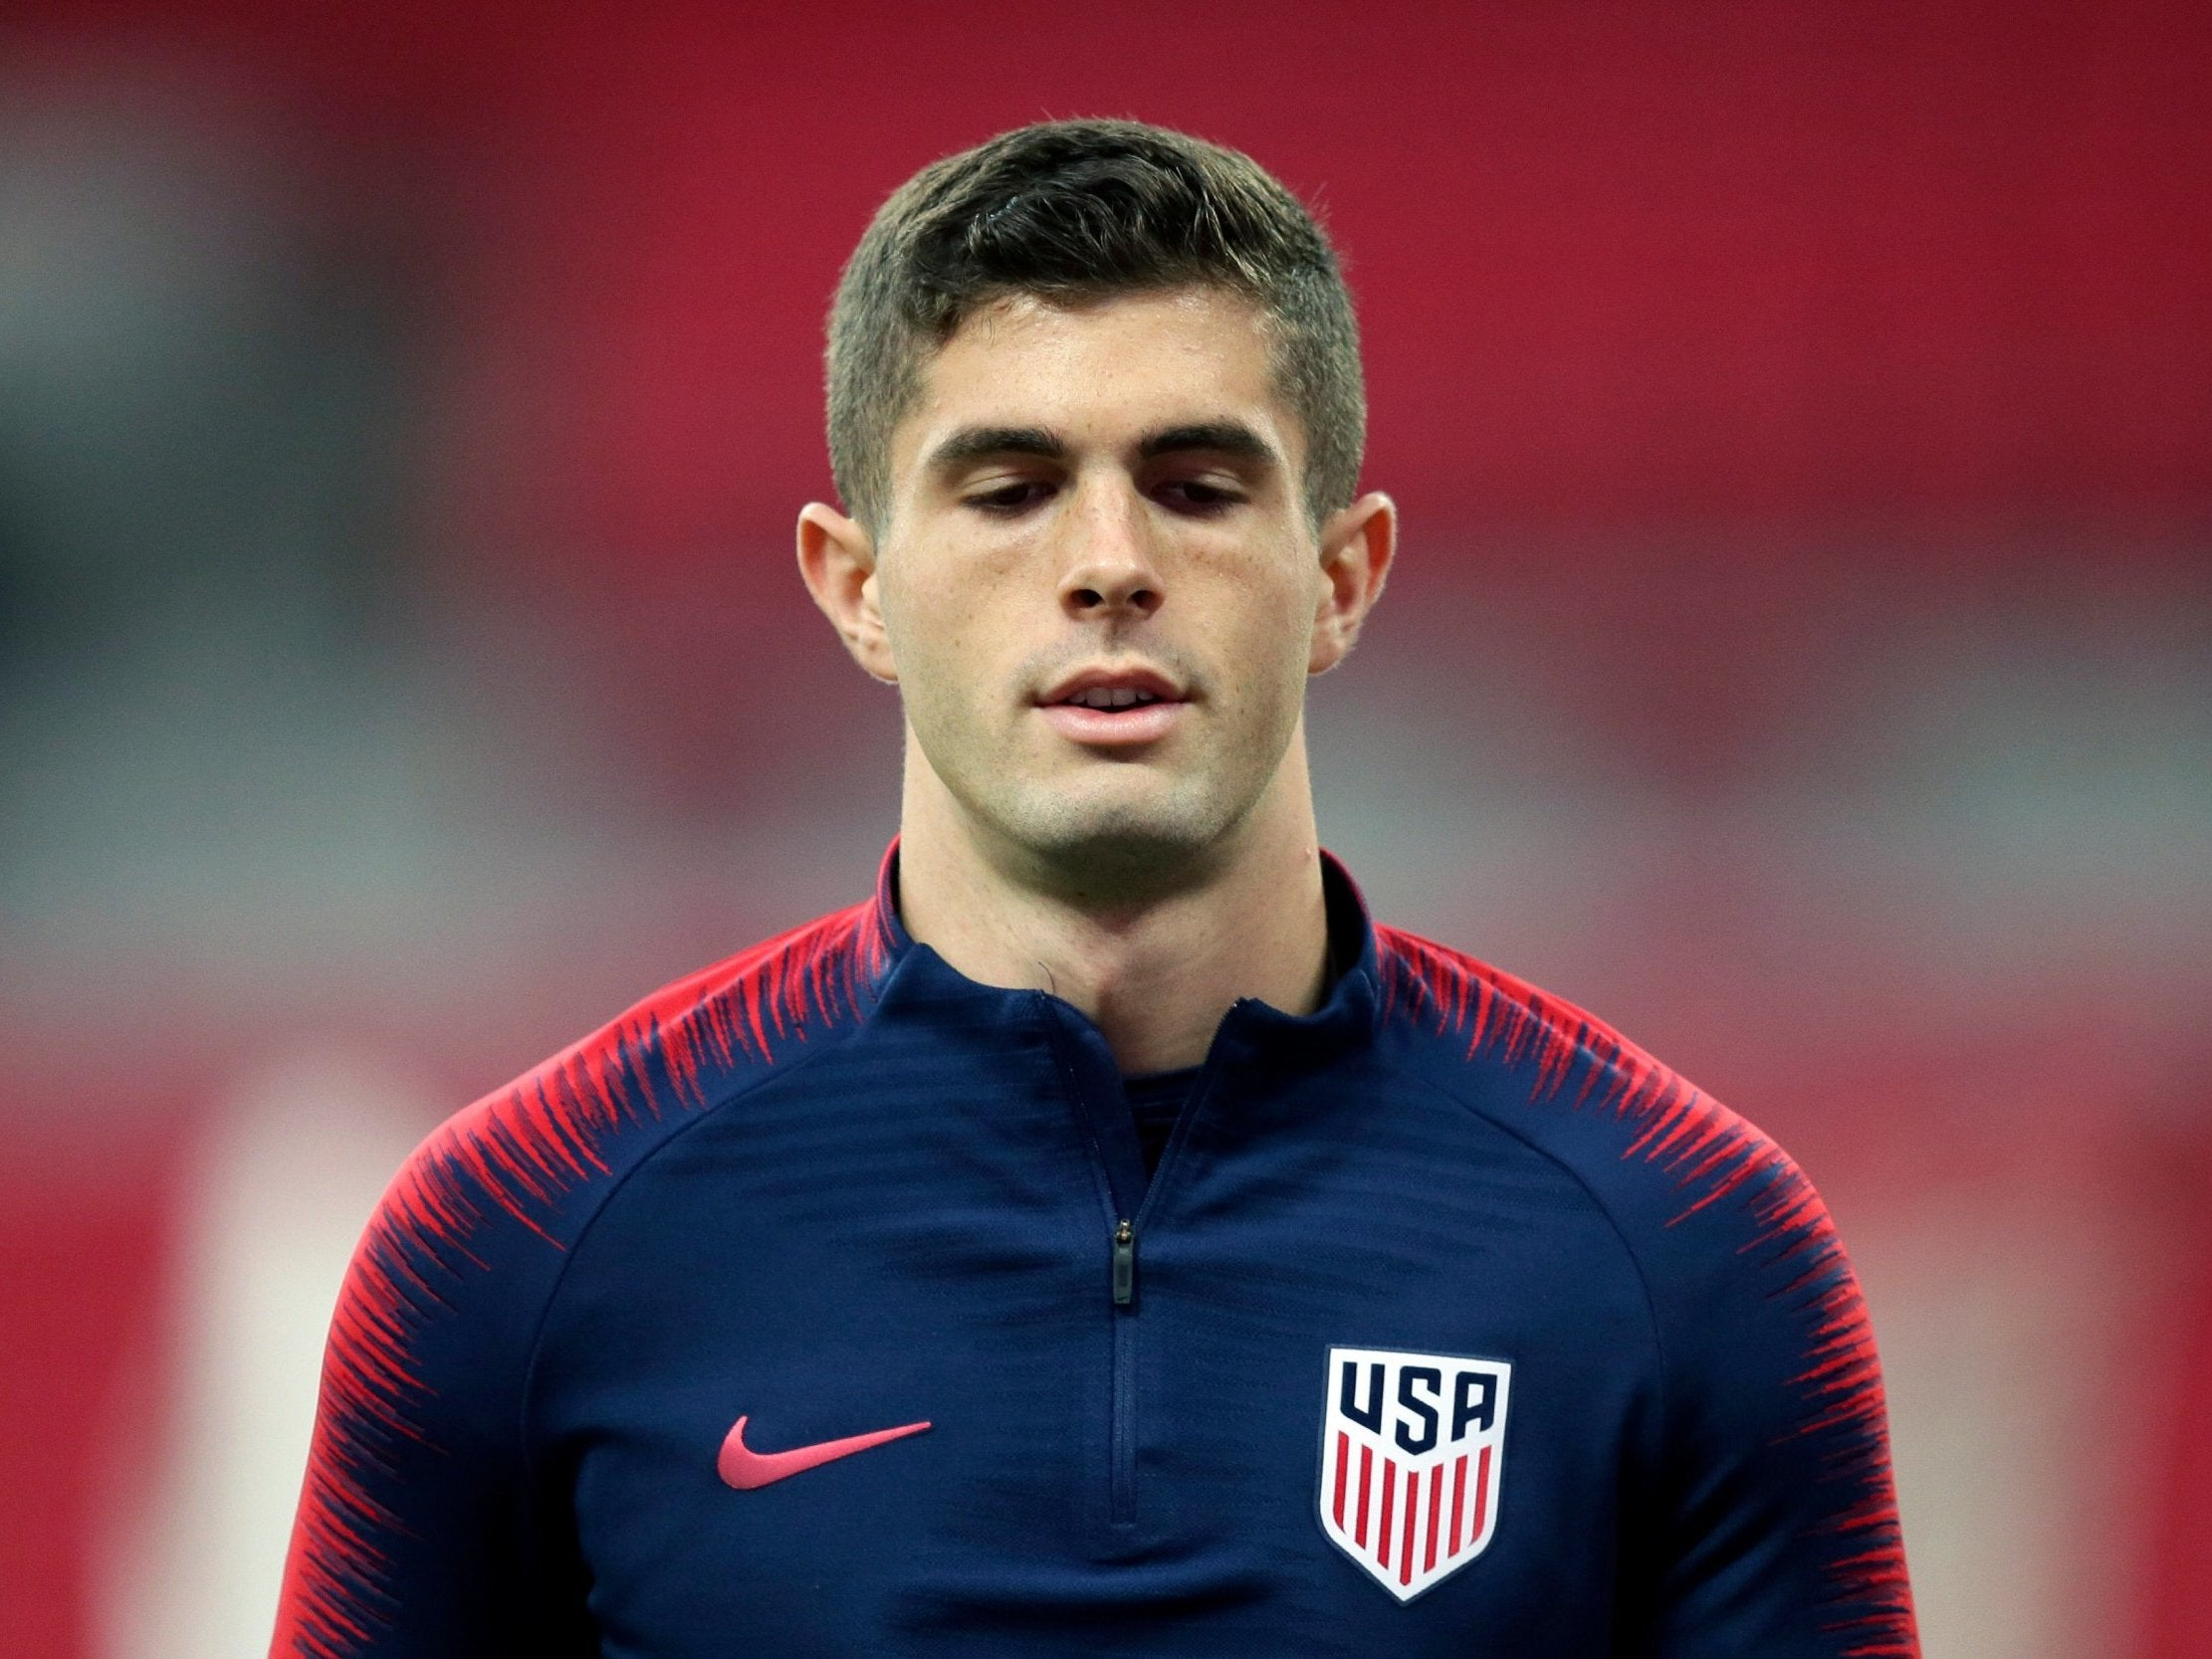 England vs USA: Christian Pulisic, the reluctant poster boy ready to take centre stage